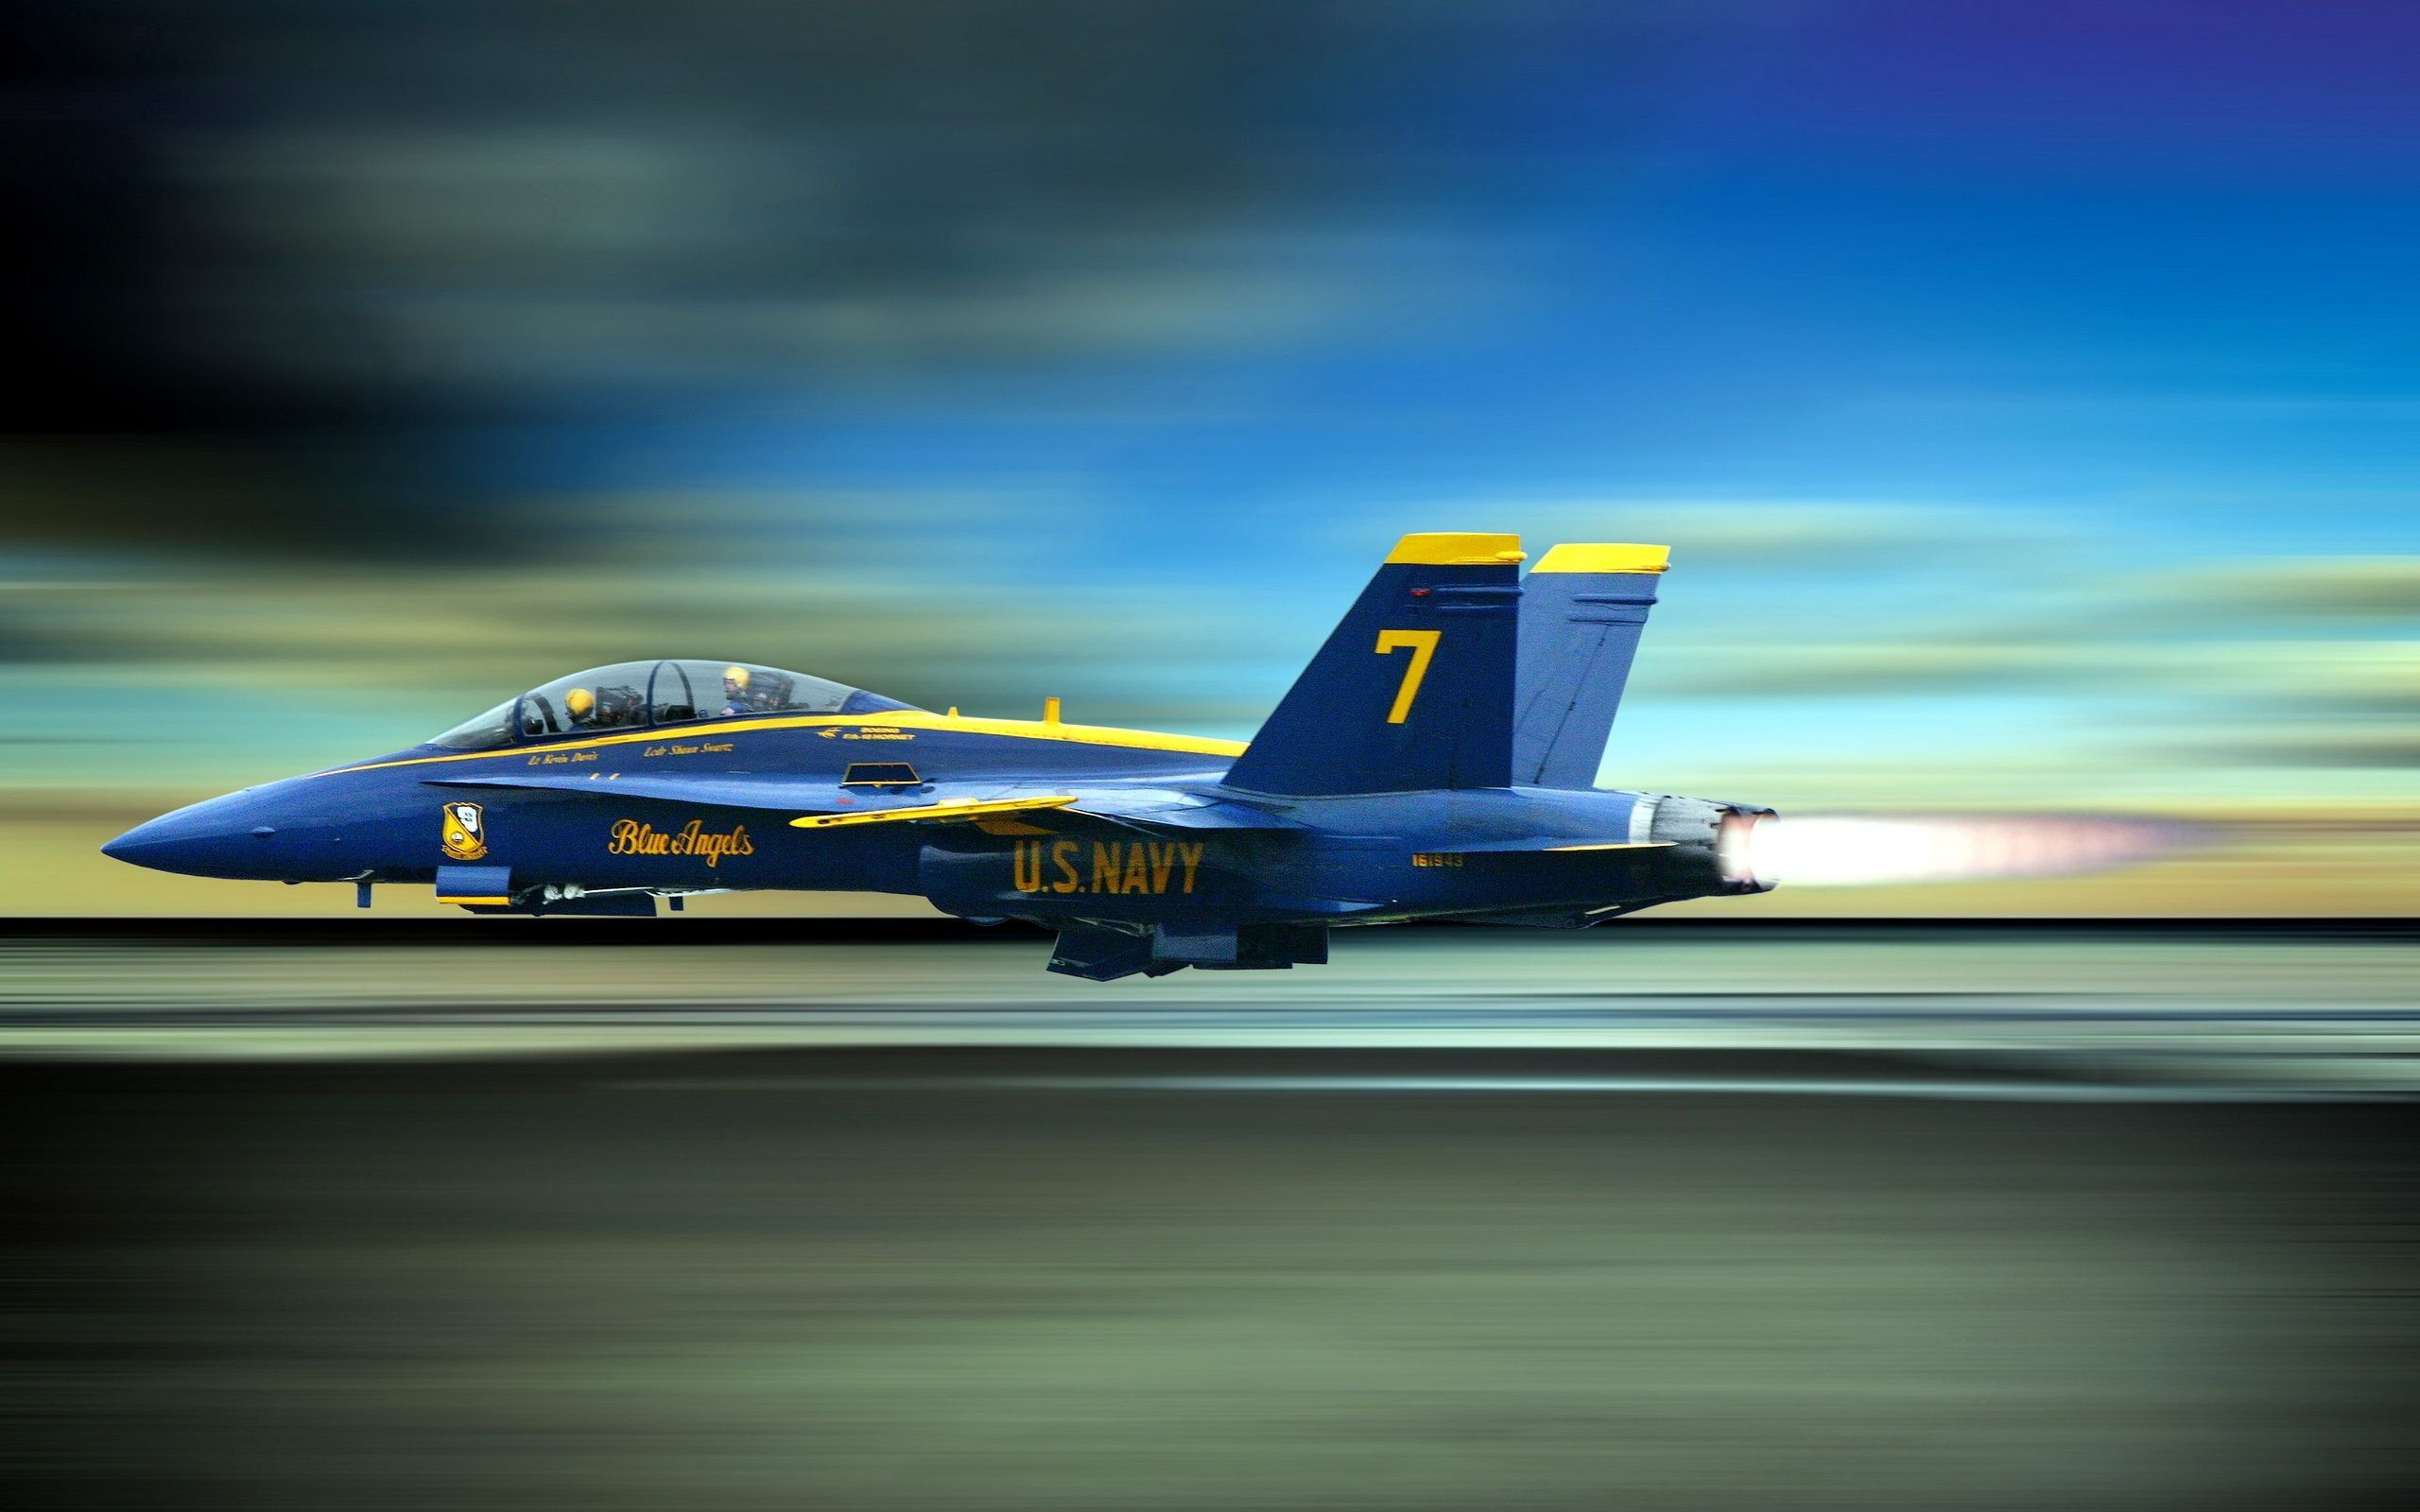 Blue+Angels+Pictures+High+Resolution Blue Angels, The